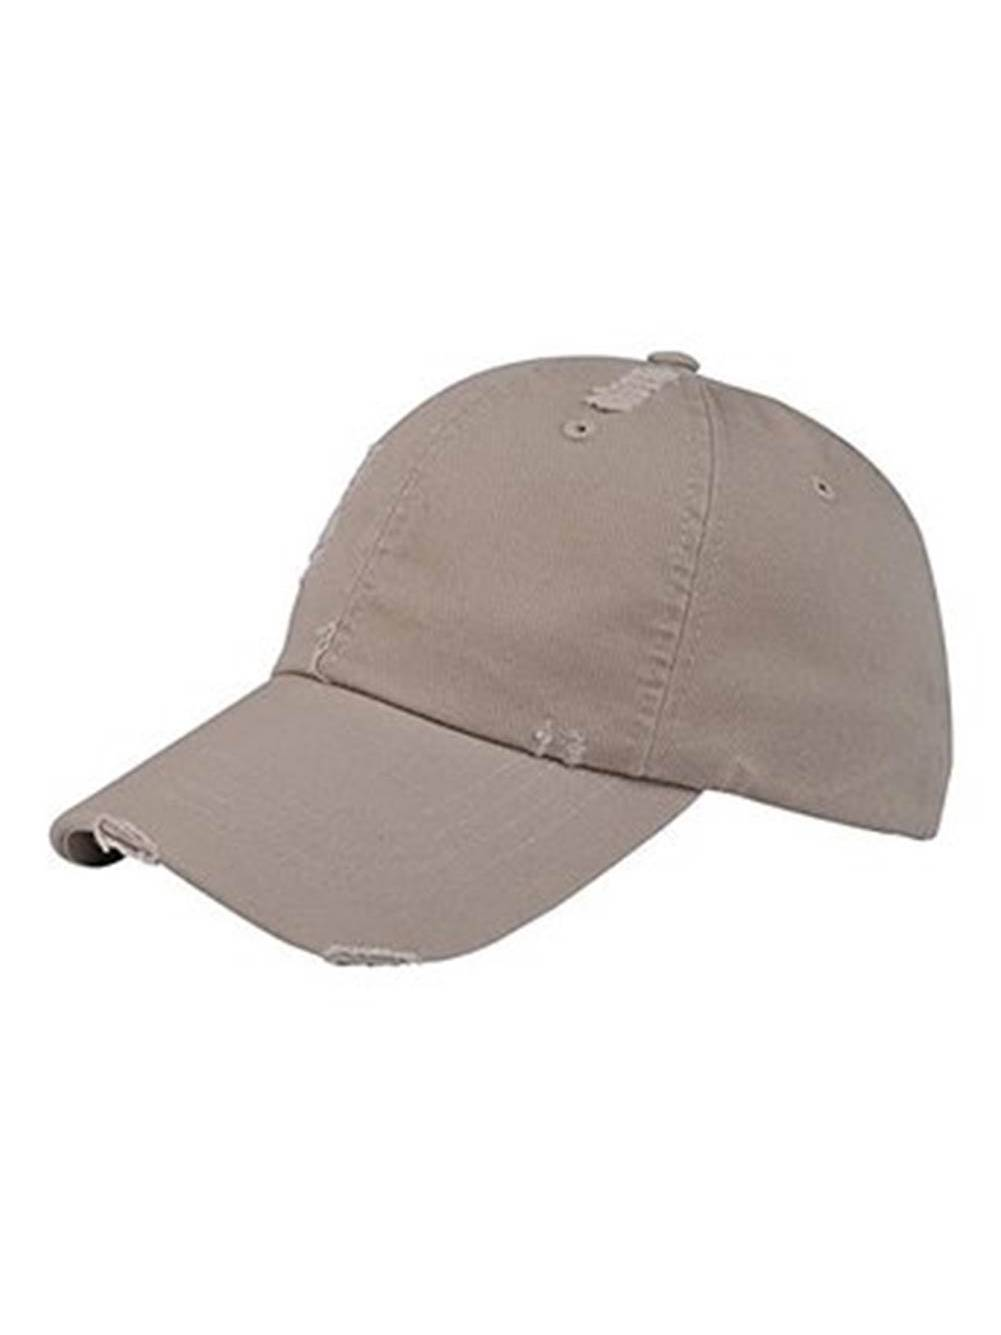 WASHED TWILL DISTRESSED CAP LOW PROFILE UNSTRUCTRED